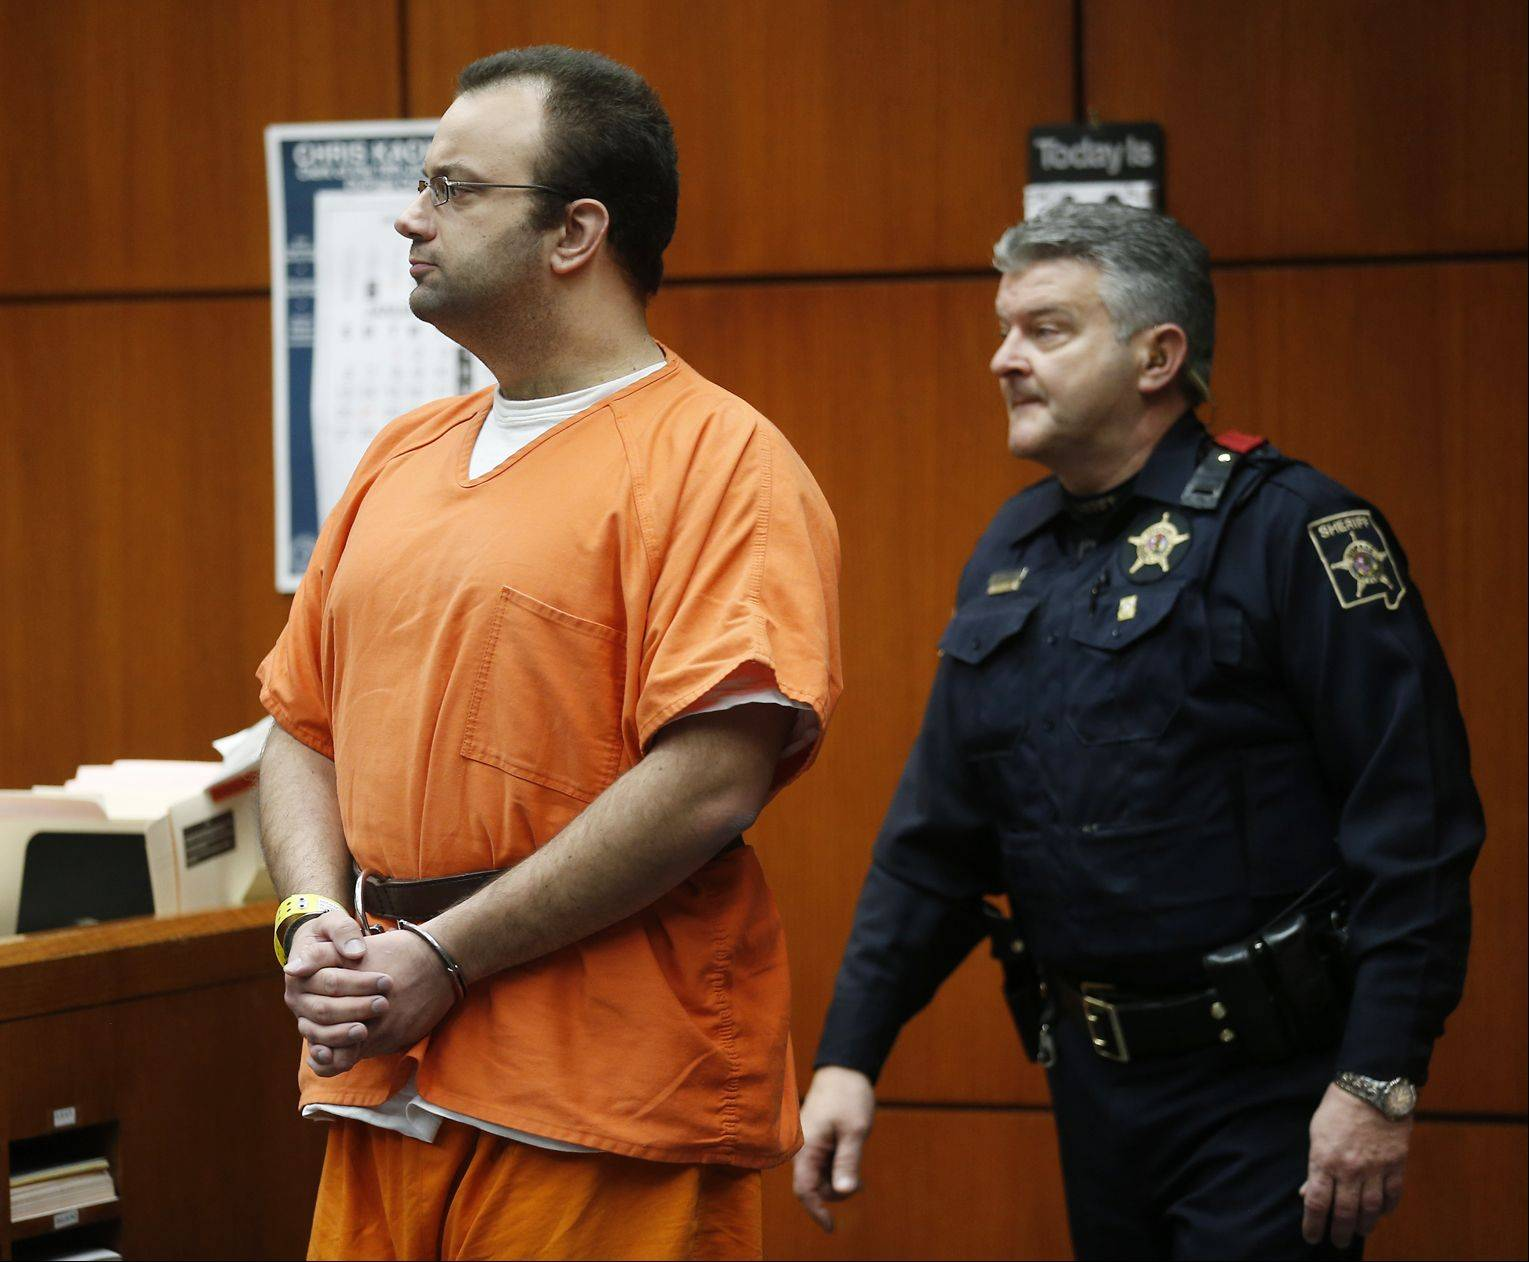 Joseph Spitalli enters a DuPage County courtroom for his arraignment on murder charges. The Darien man is charged with the Nov. 16 slaying of Teymur Huseynli, who was dating Spitalli´s former girlfriend.